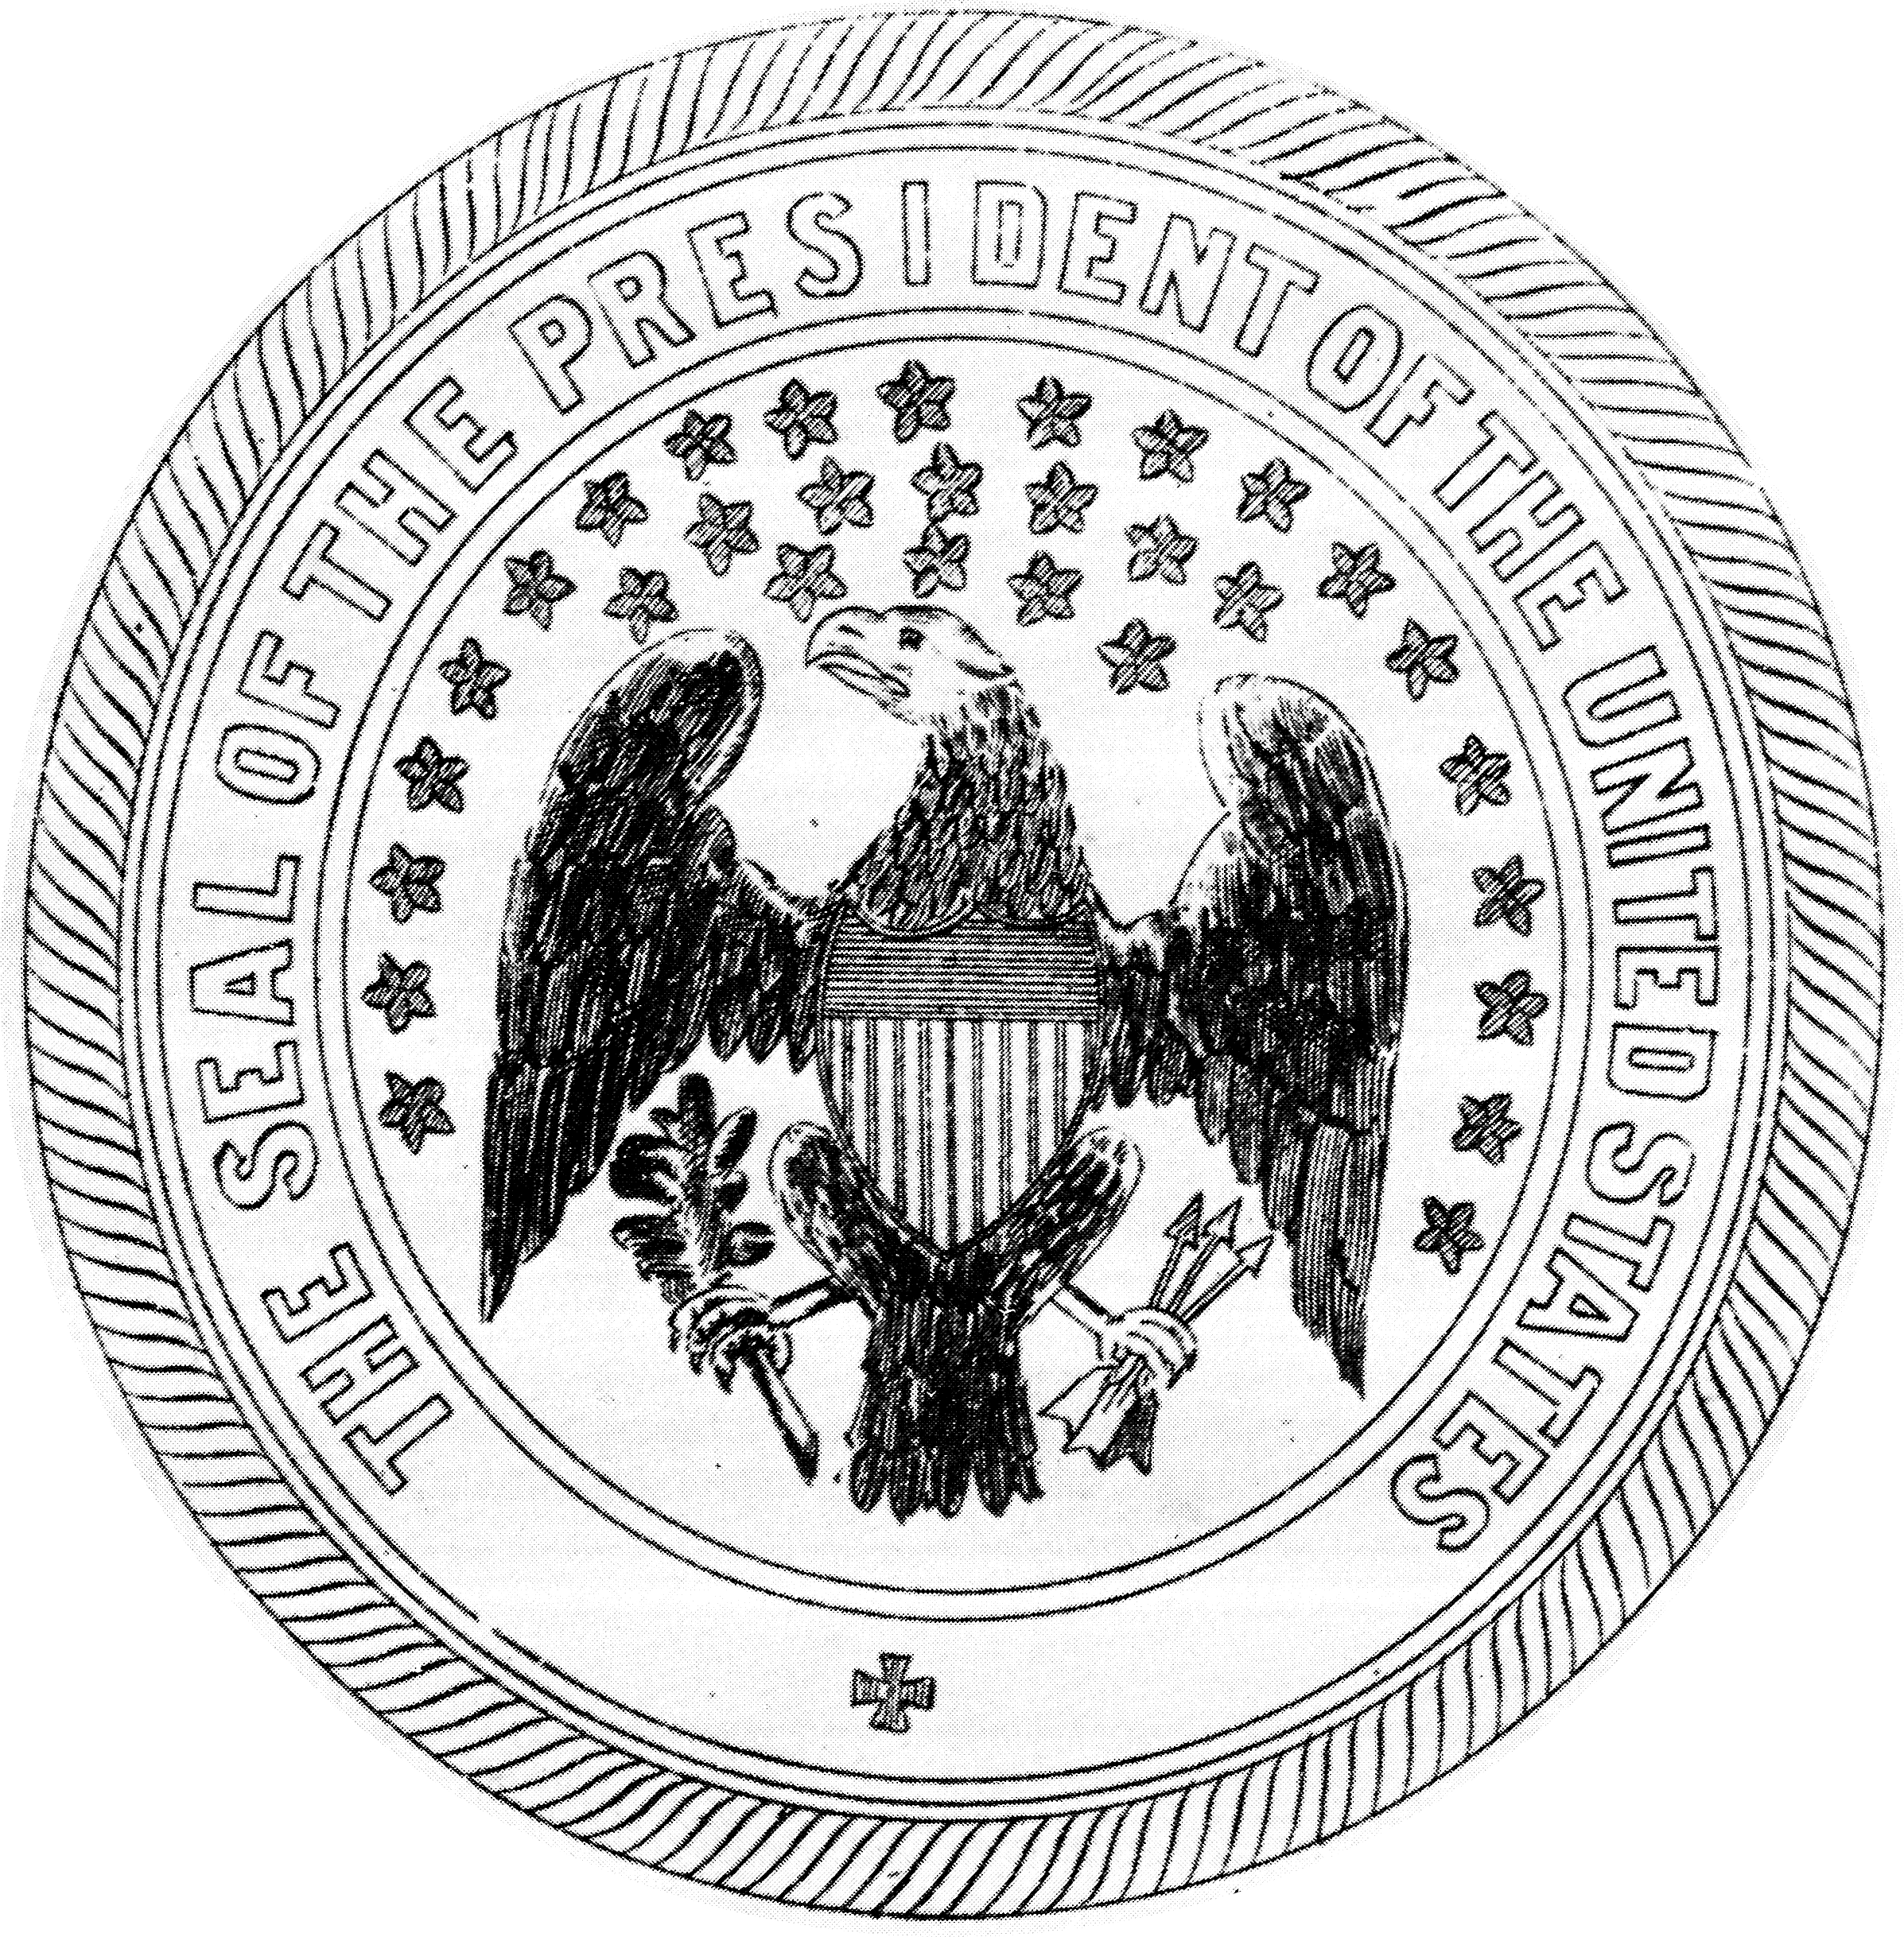 Presidential seal coloring page coloring home for Seal coloring pages